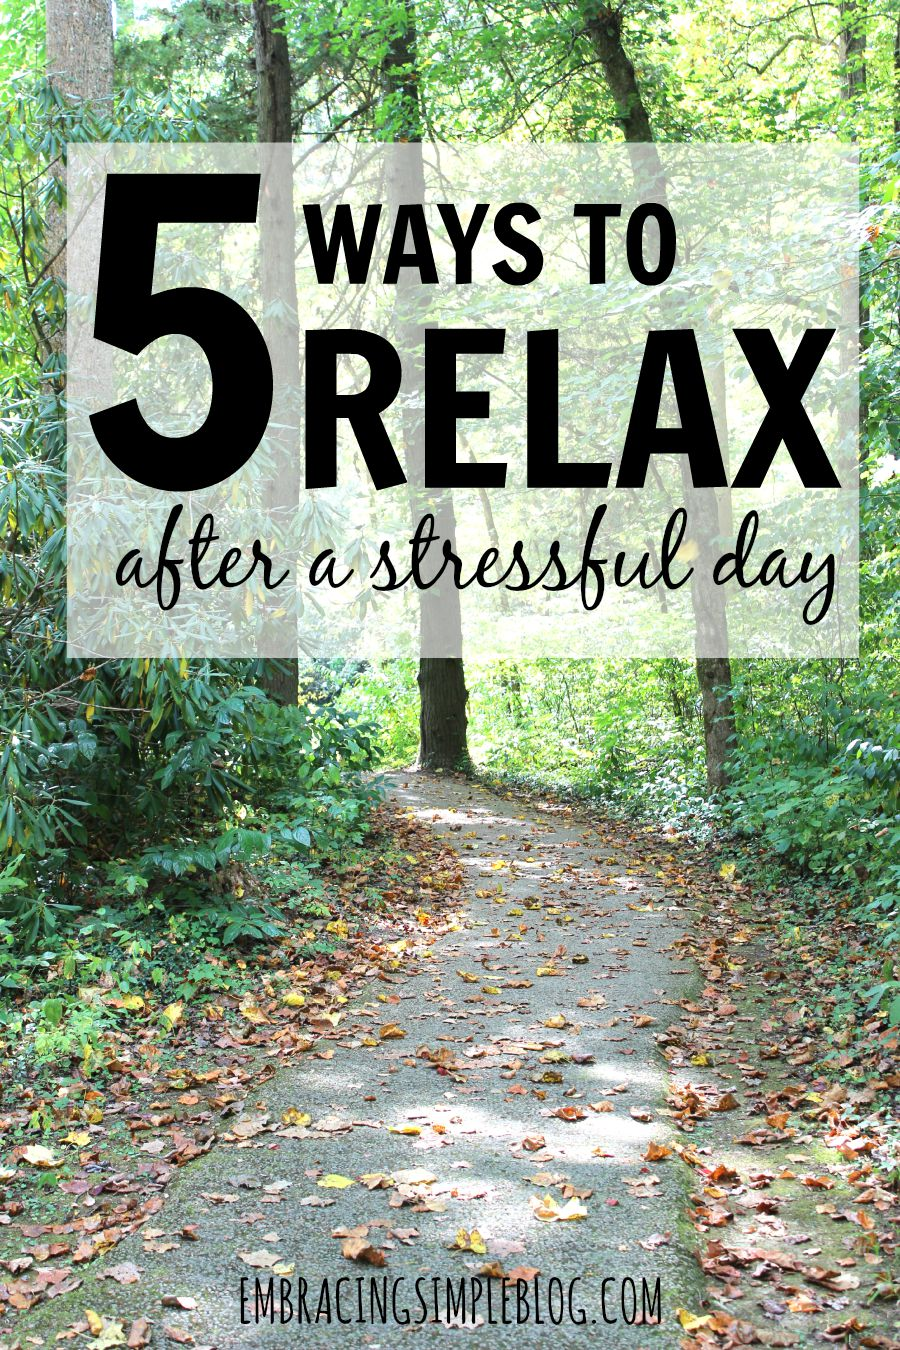 Is the busyness of everyday life making it difficult to handle your stress levels? Here are 5 ways to relax after a stressful day so you can feel at peace and calm again!